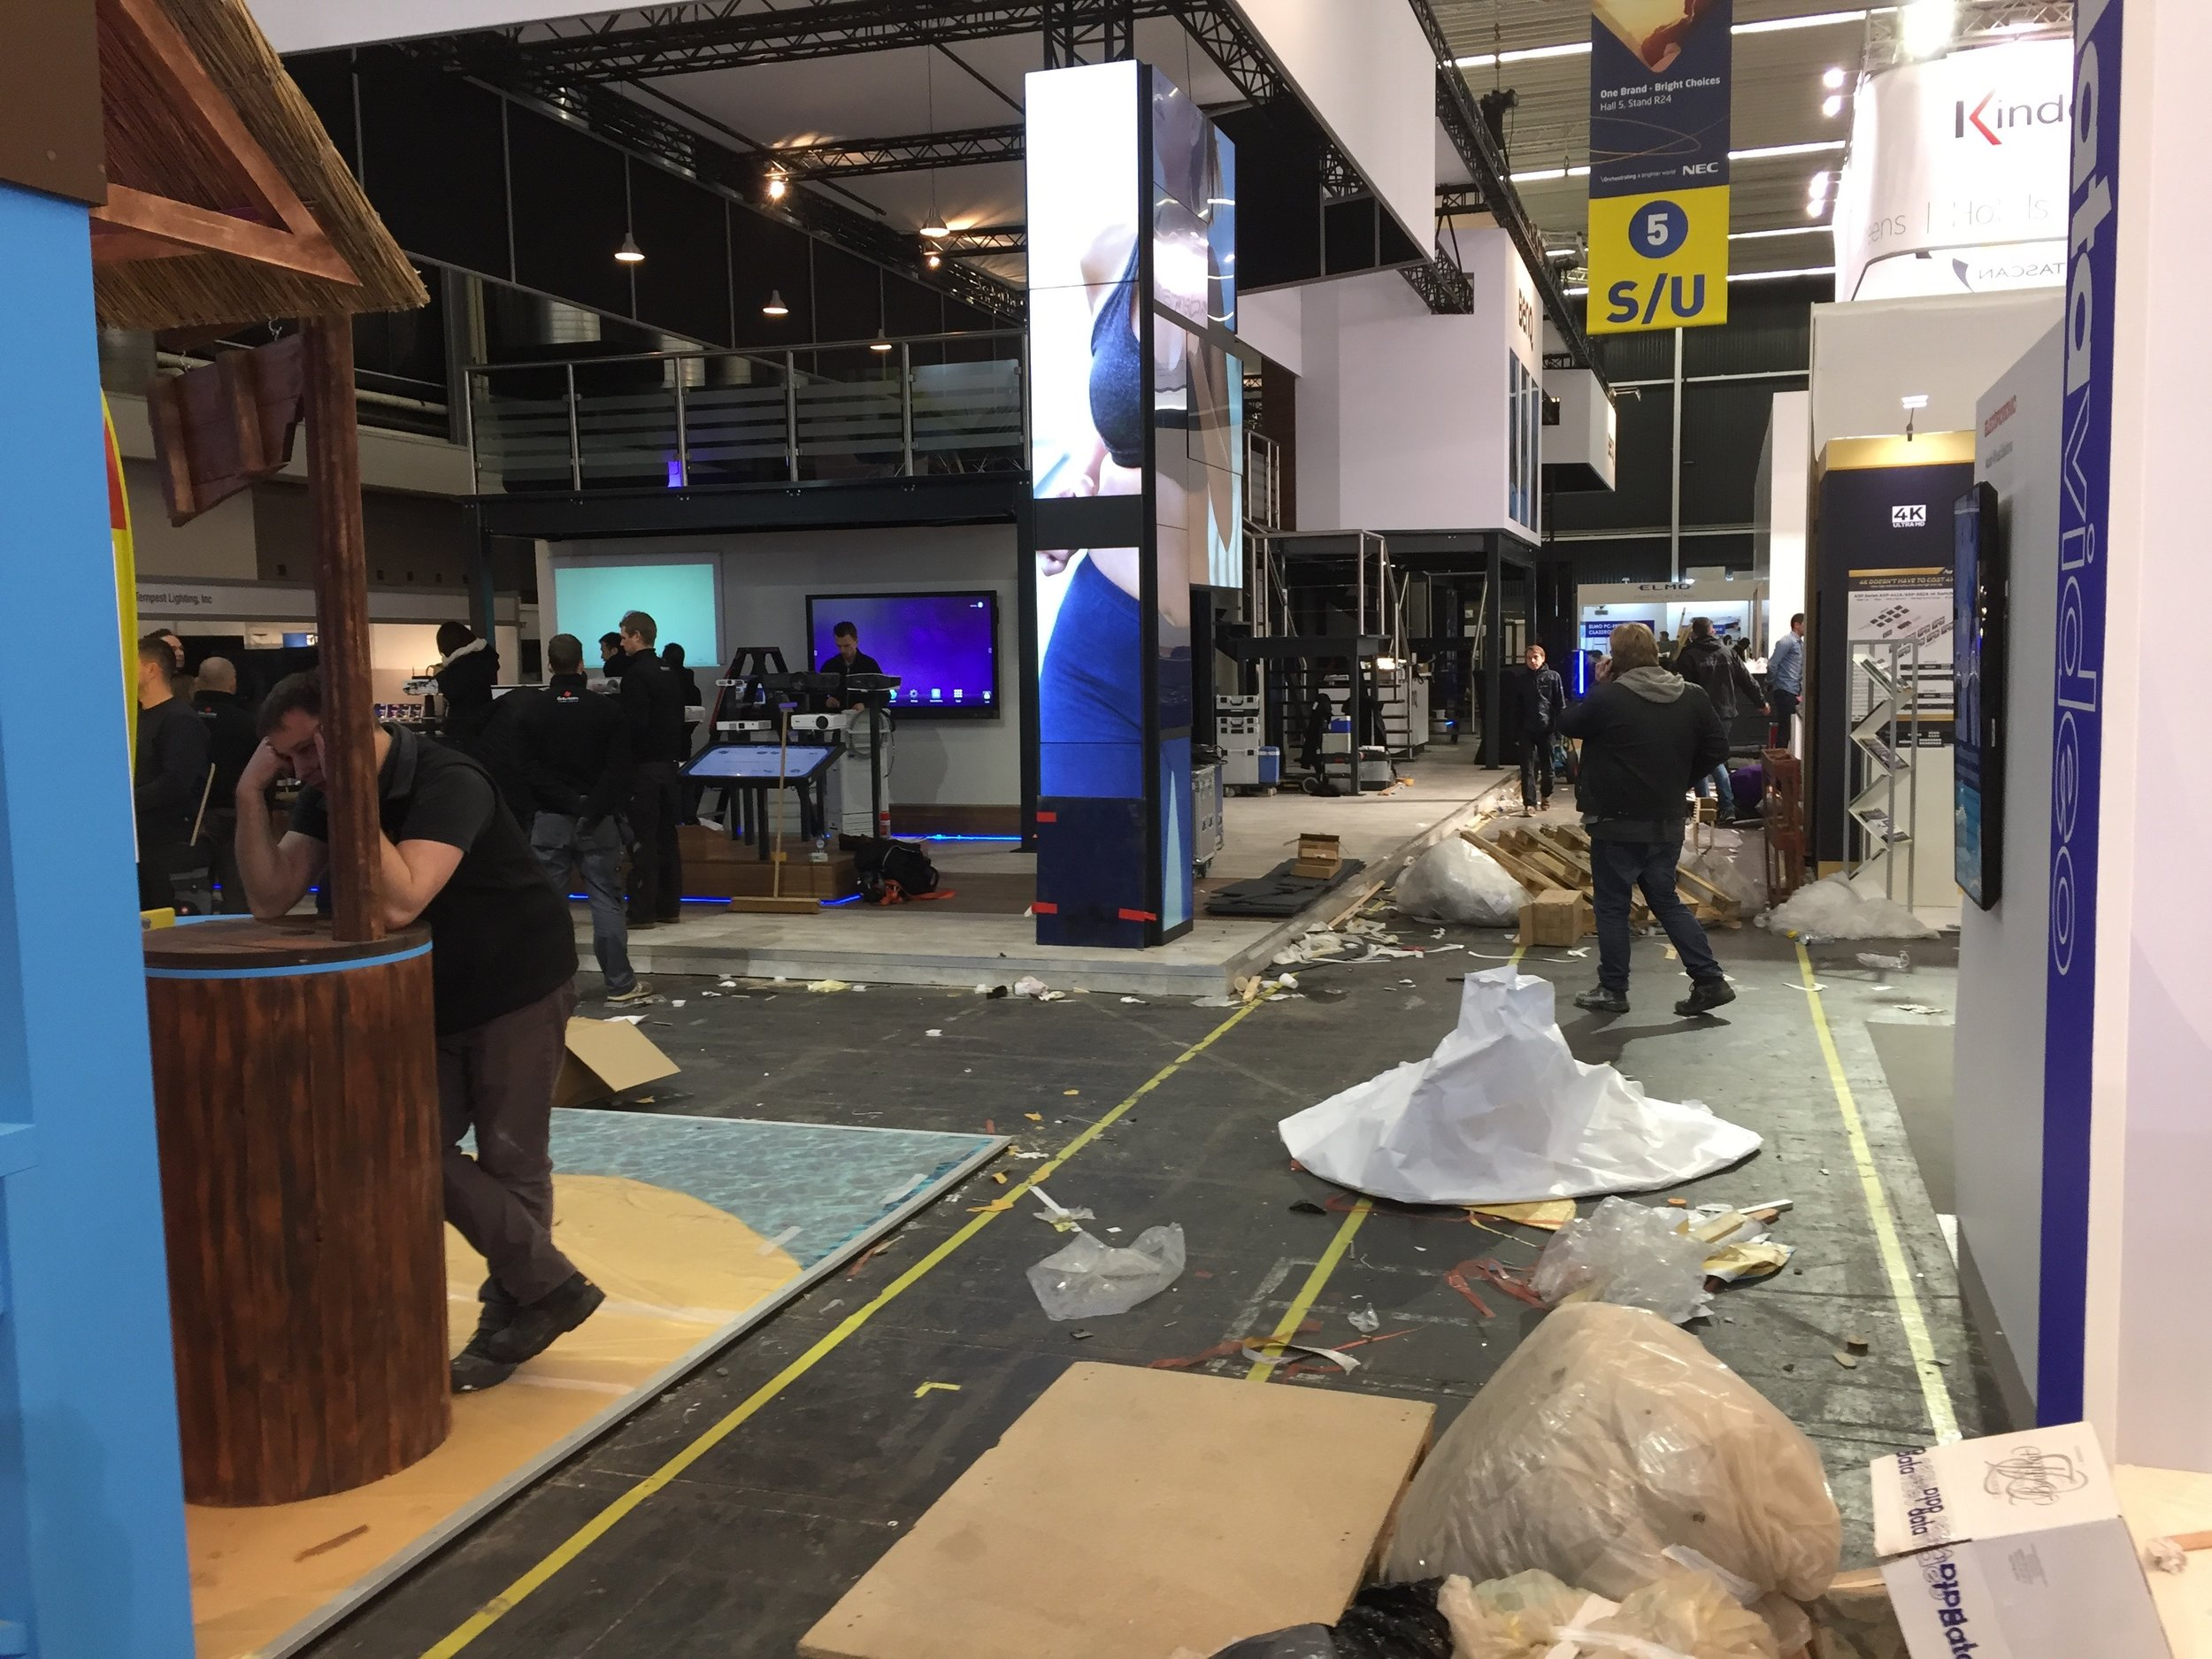 Show floor chaos the day before opening